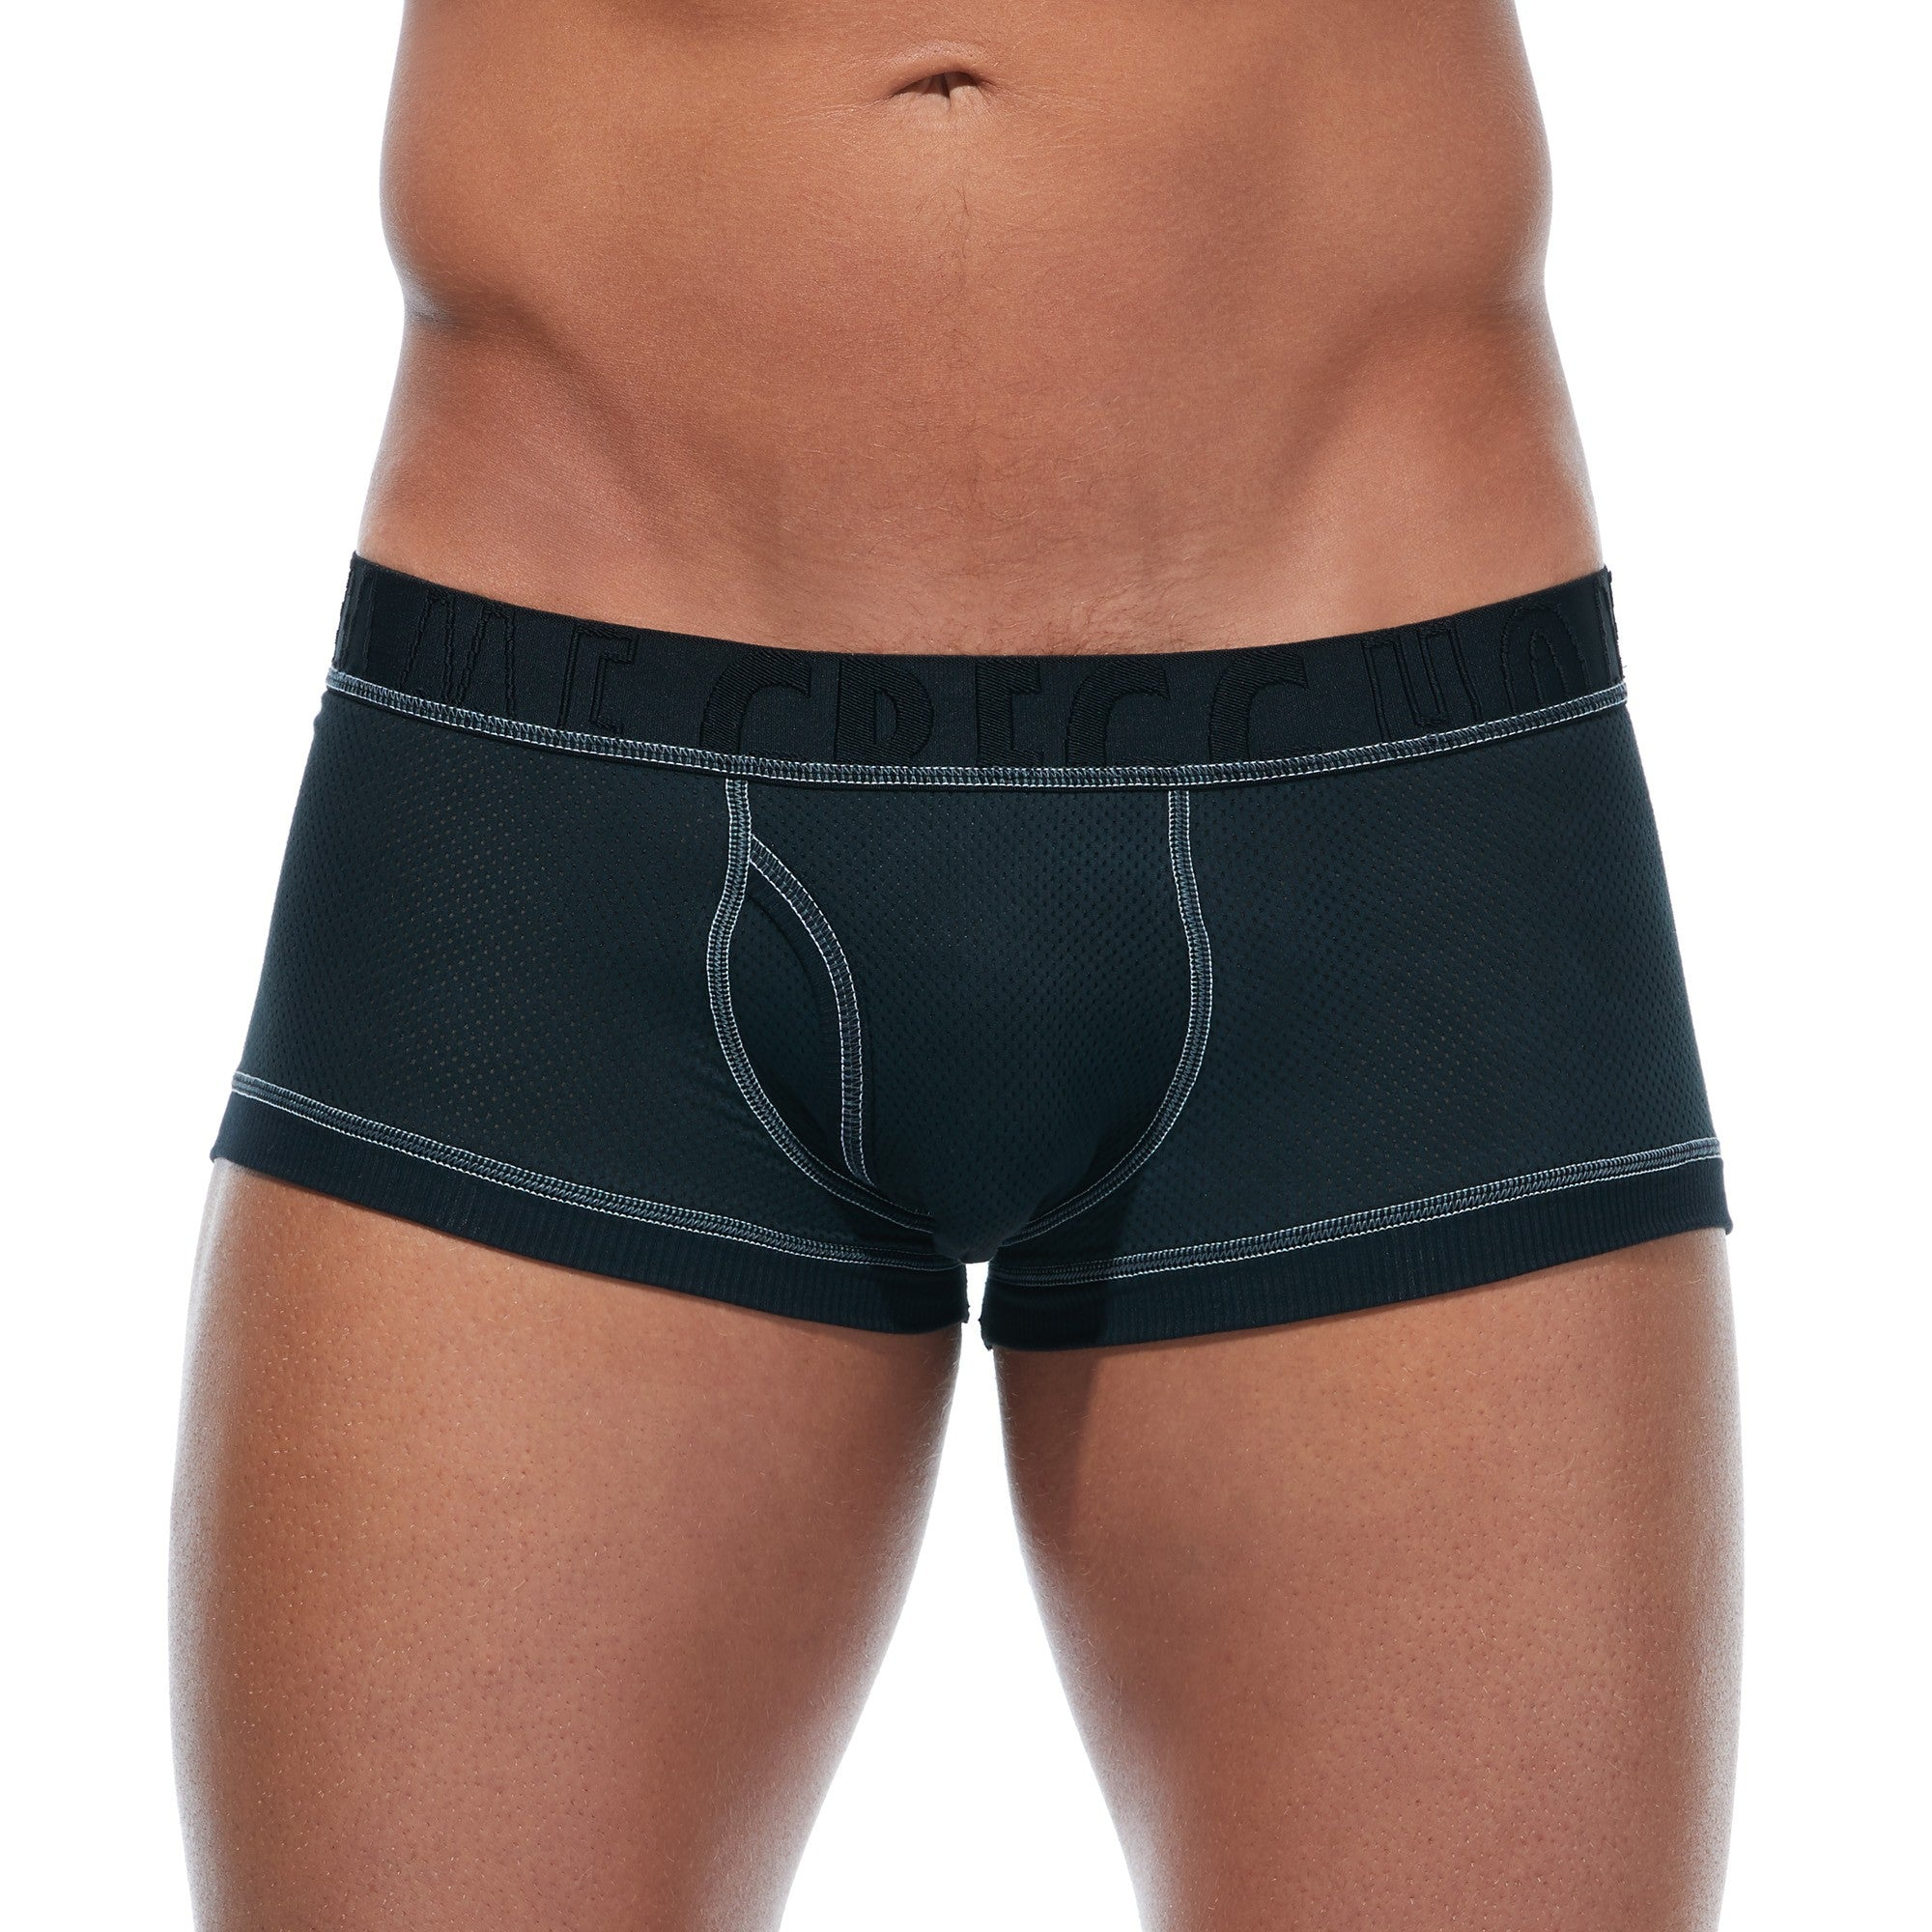 Gregg Homme Black Vintage Boxer Brief